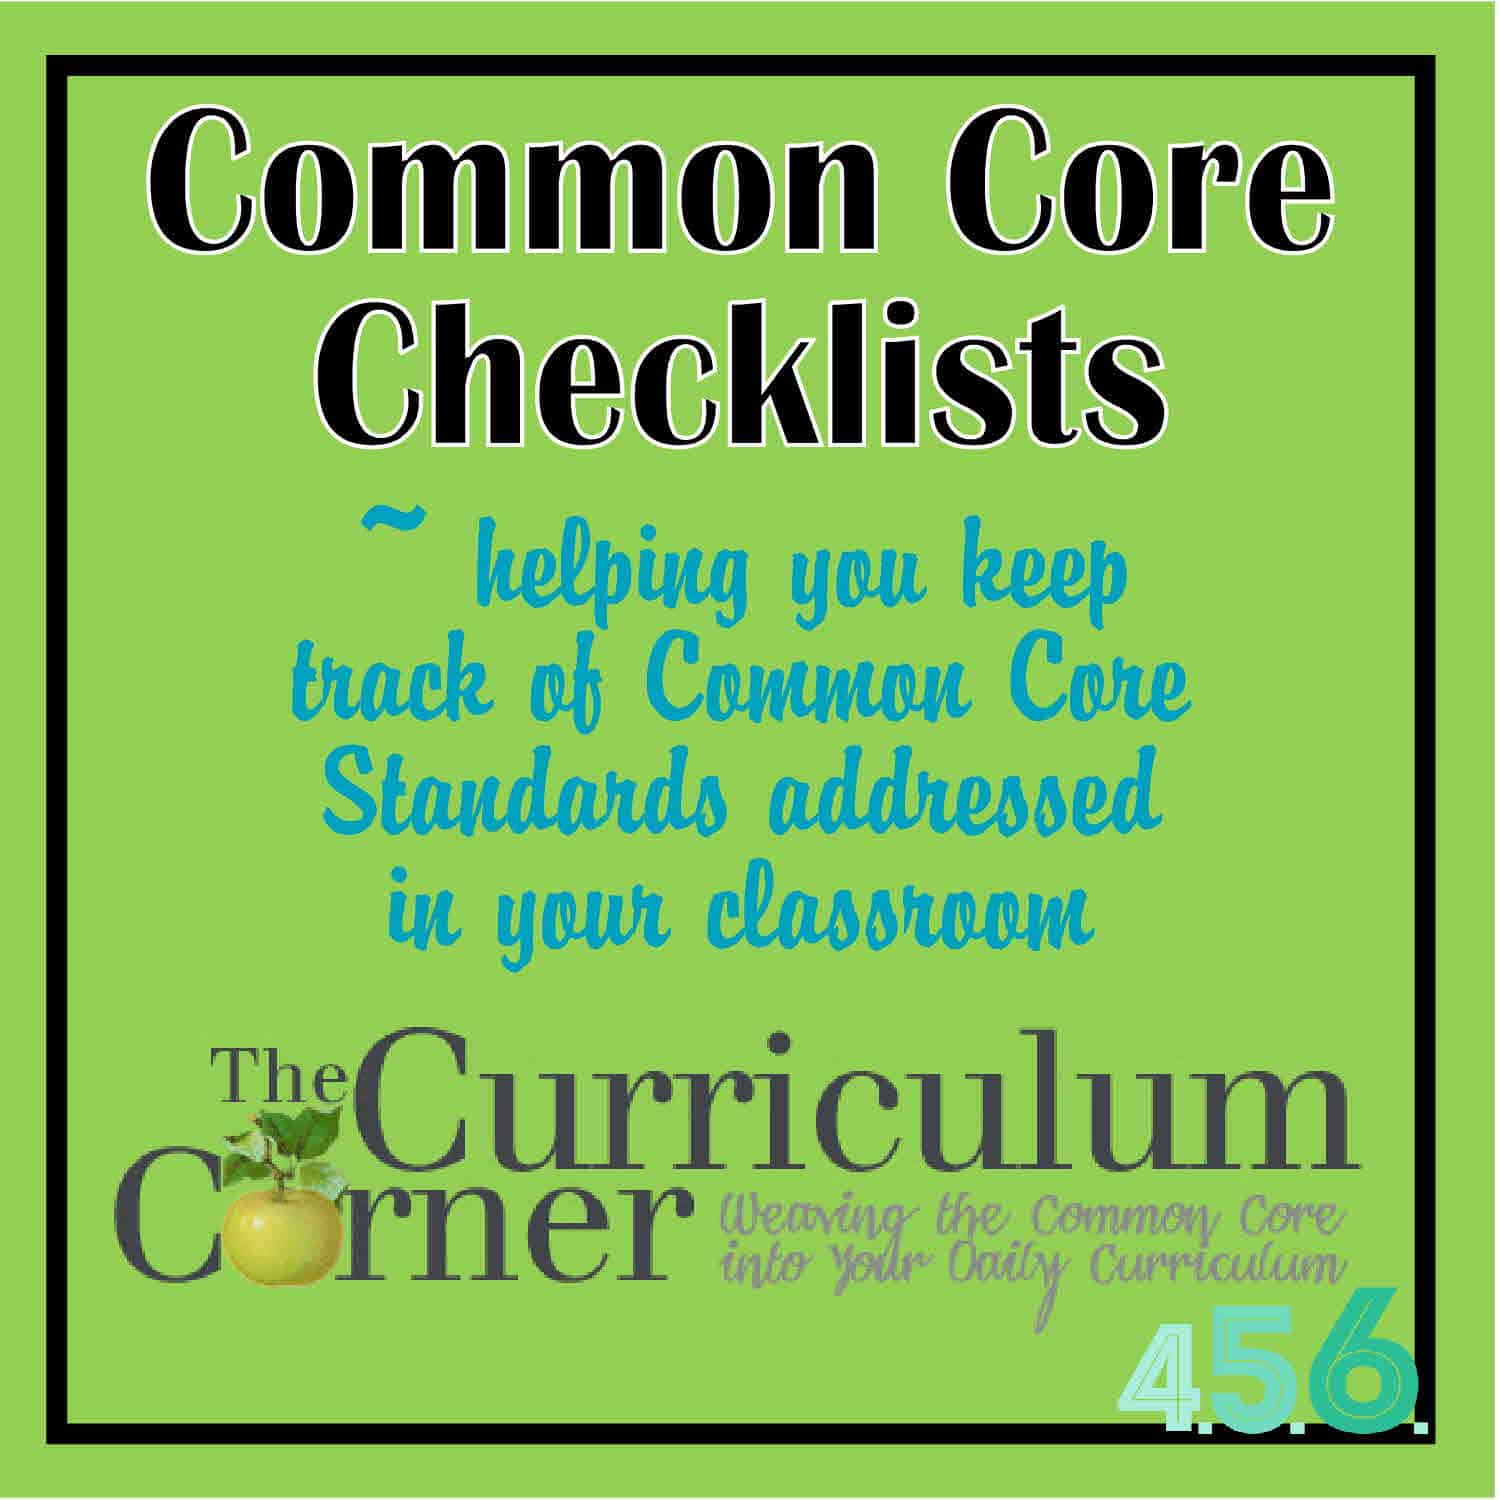 4th 5th And 6th Grade Common Core Checklists